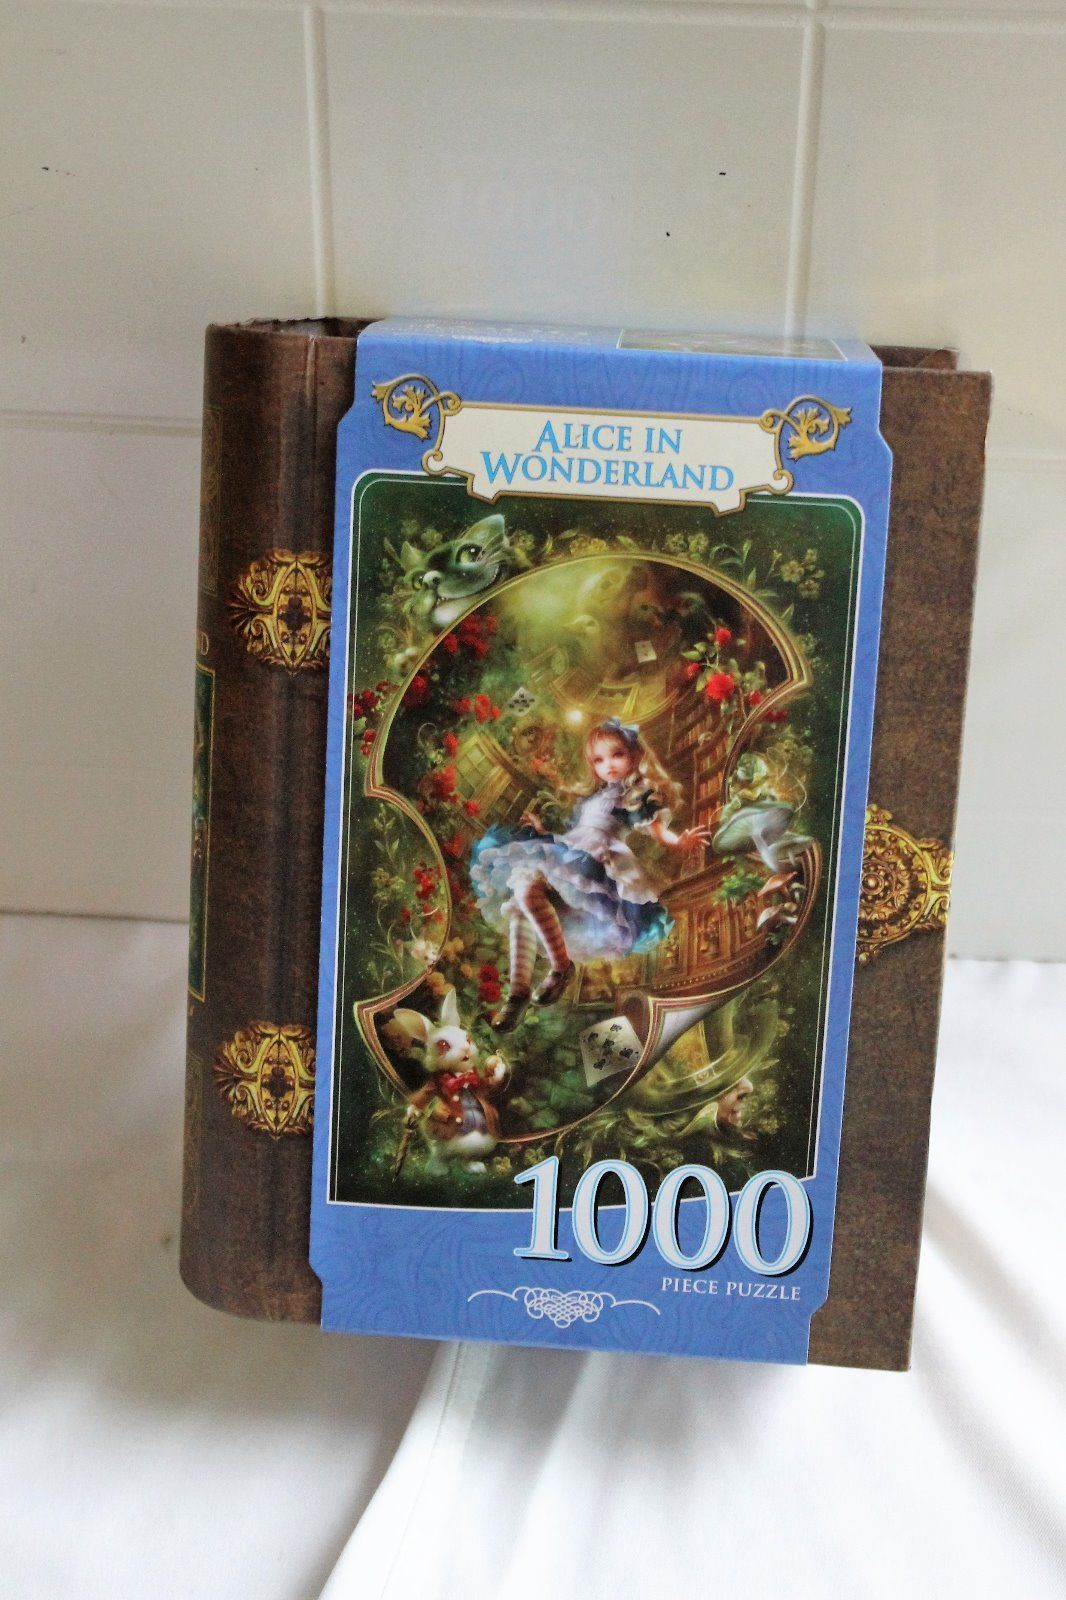 Primary image for Alice in Wonderland - 1000 Piece Jigsaw Puzzle - Masterpieces